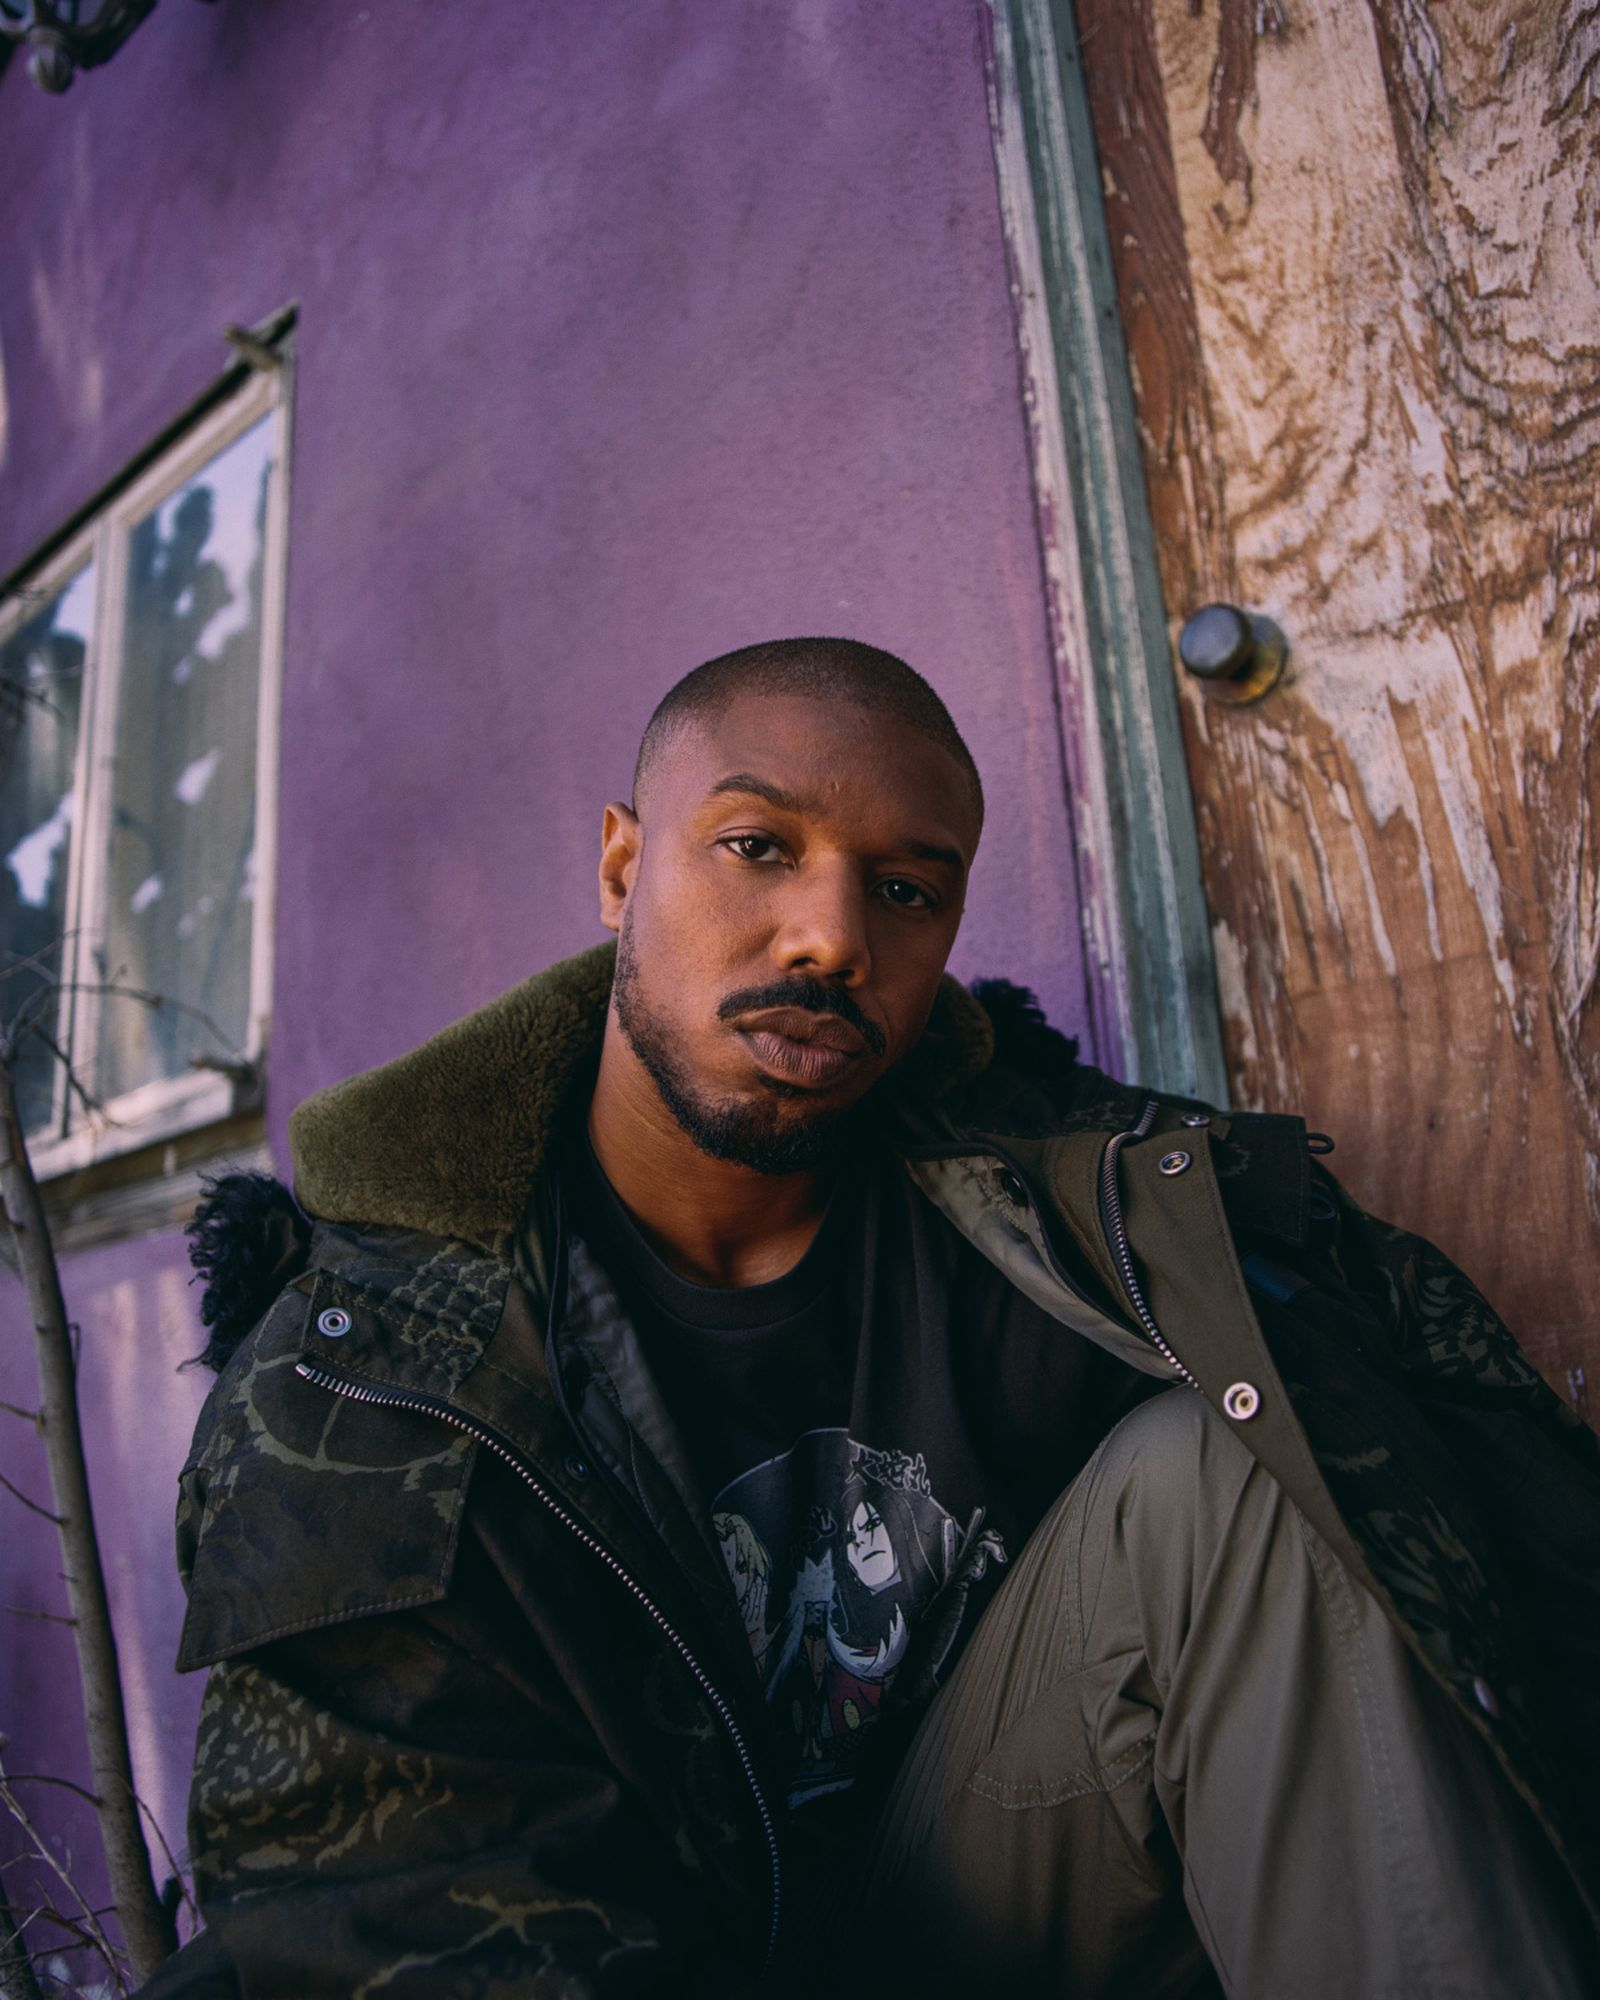 mbj coach interview Michael B. Jordan anime highsnobiety 19